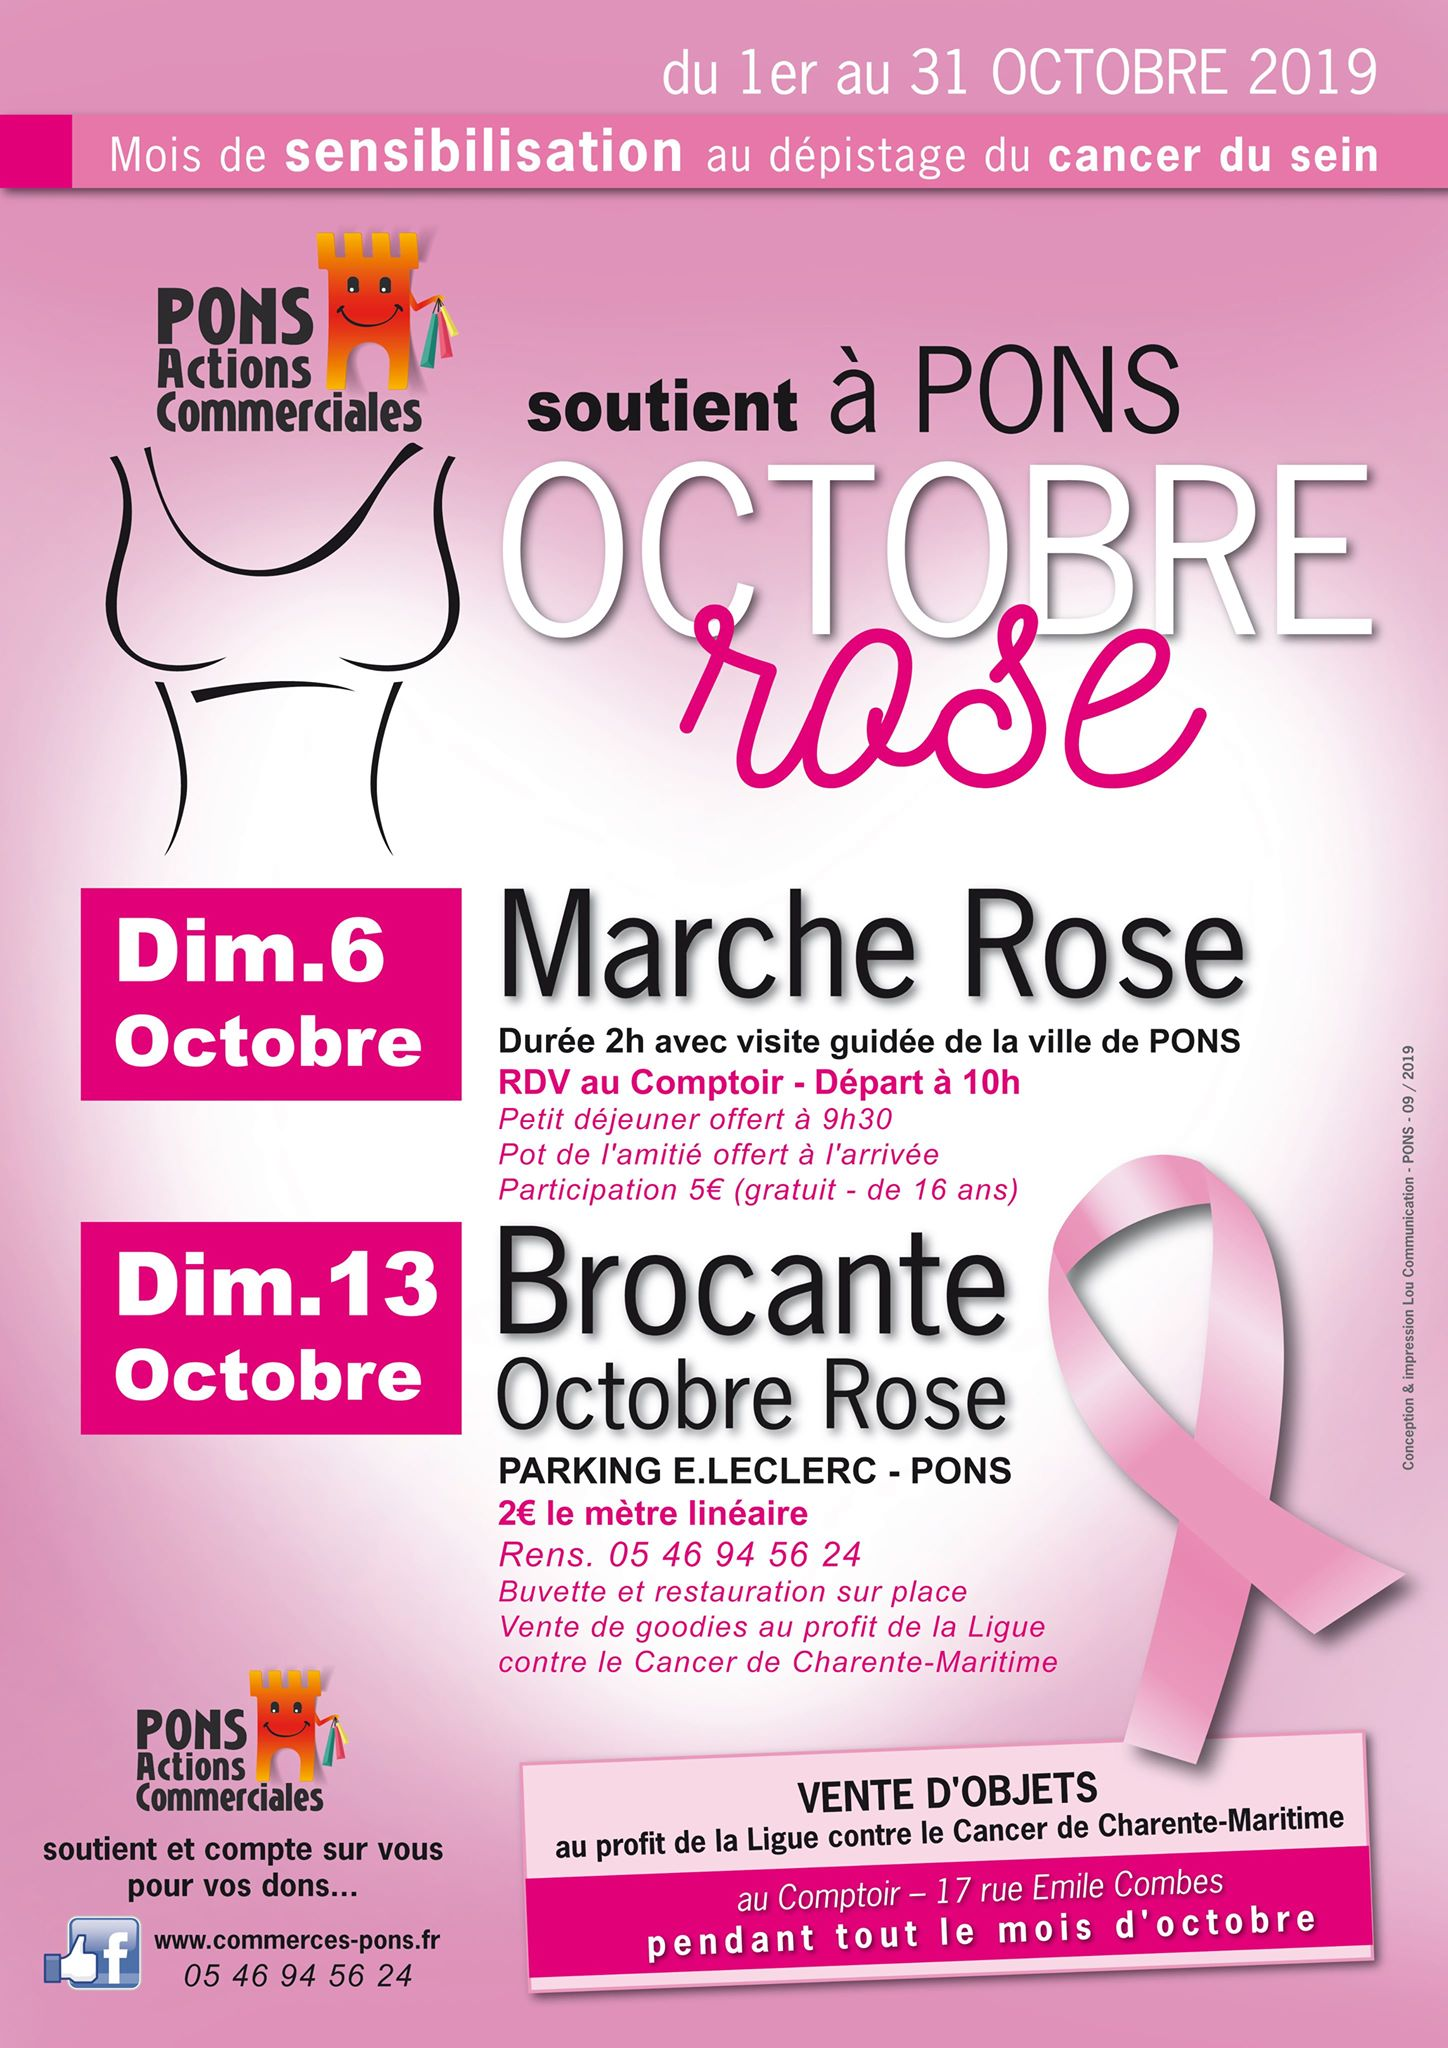 Octobre rose - Pons Actions Commerciales - Marche rose - Brocante